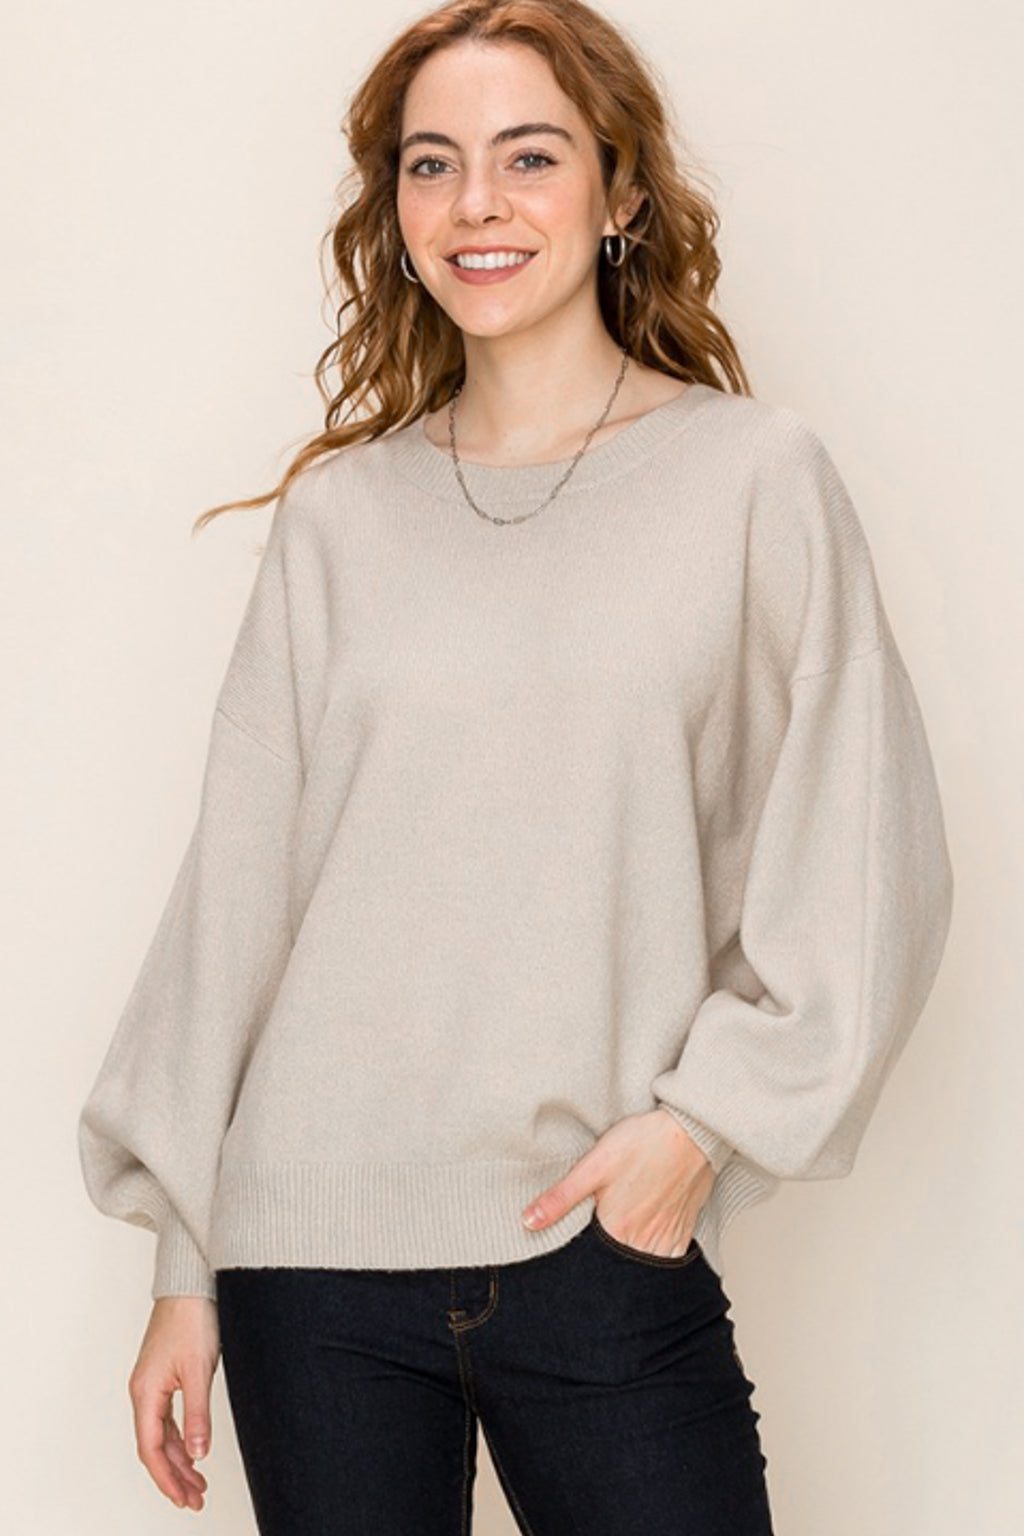 Ellie Crew Neck Knit Sweater - honey